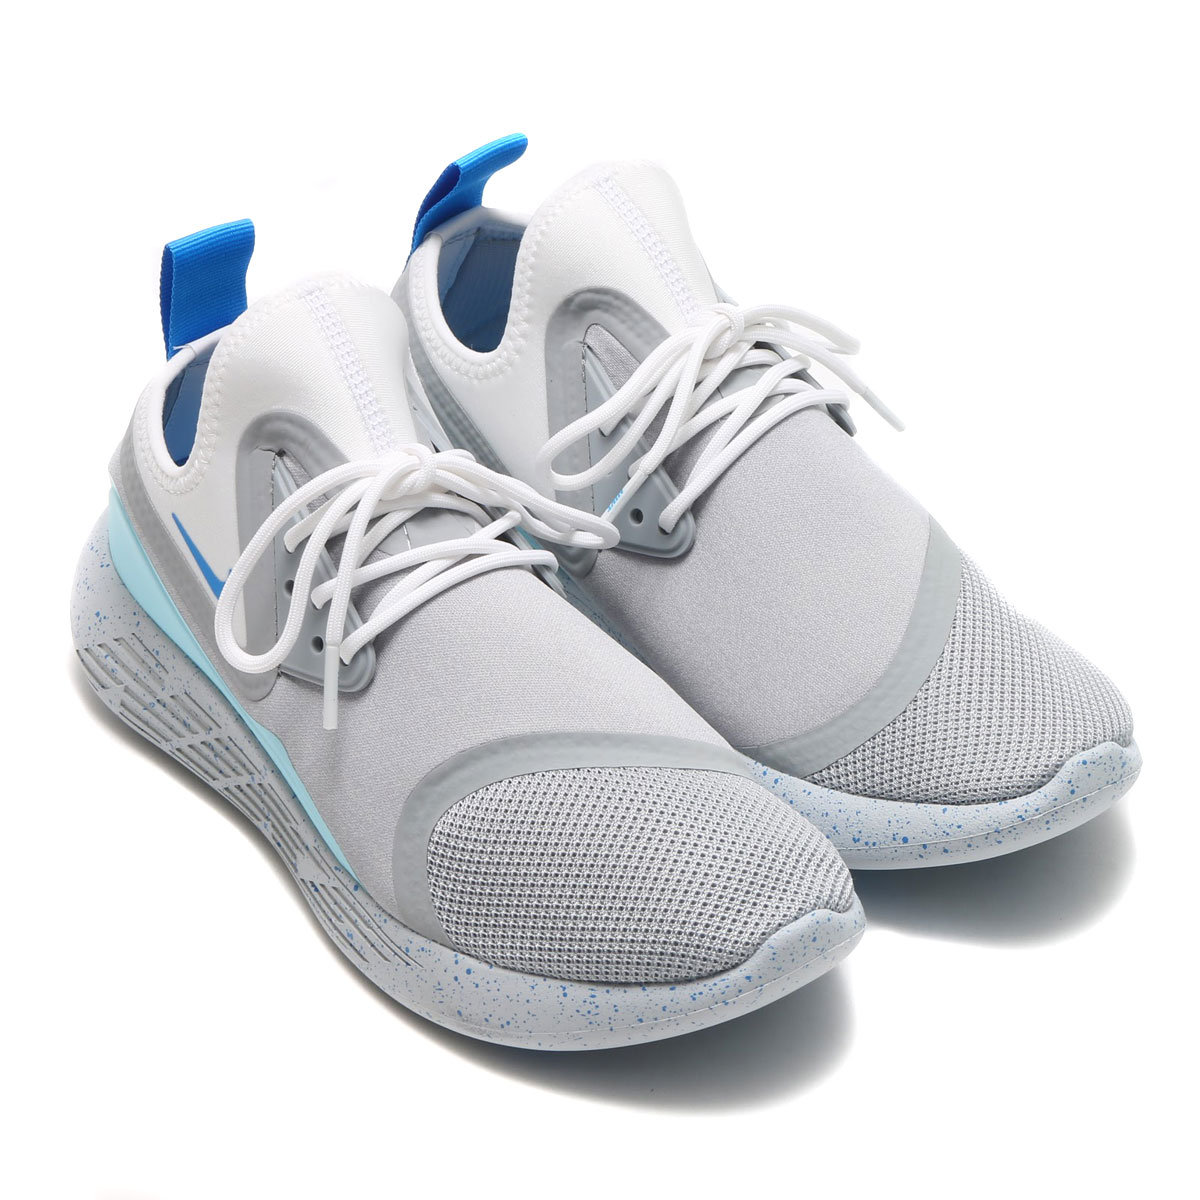 NIKE LUNARCHARGE BN (나이키 루나 요금 BN) (WOLF GREY/PHOTO BLUE-WHITE) 17 SU-S